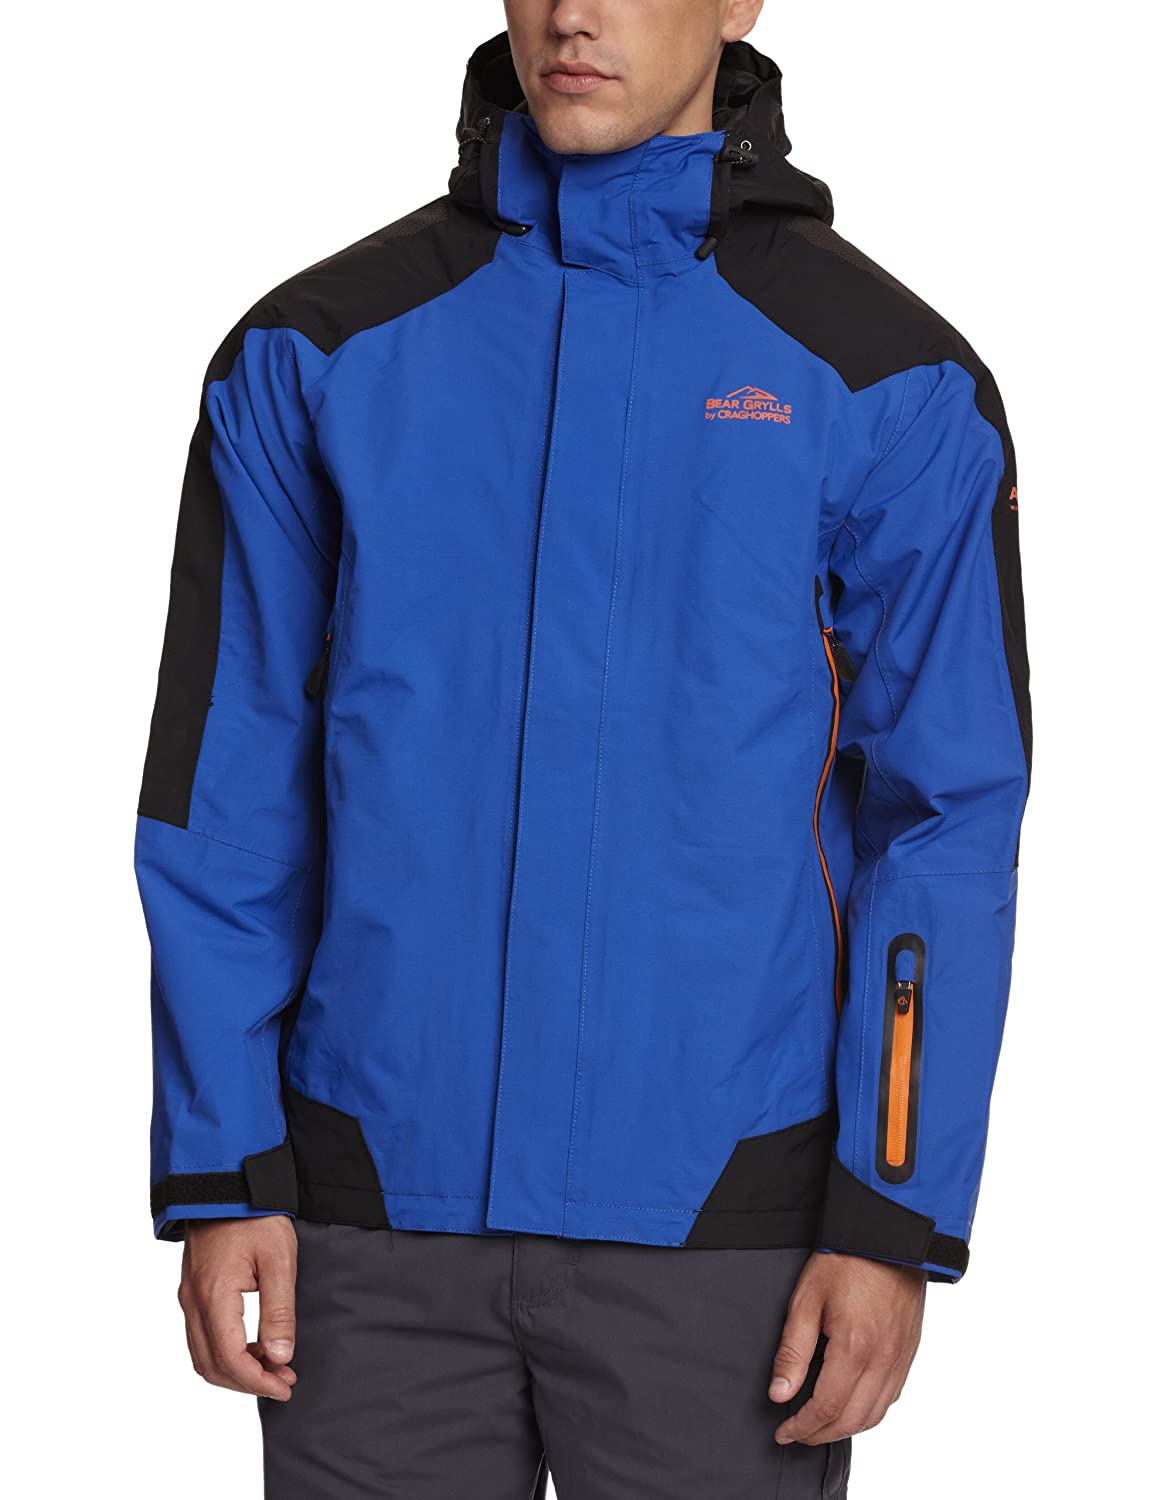 Craghoppers Herren Funktionsjacke Wasserdicht Bg Mountain